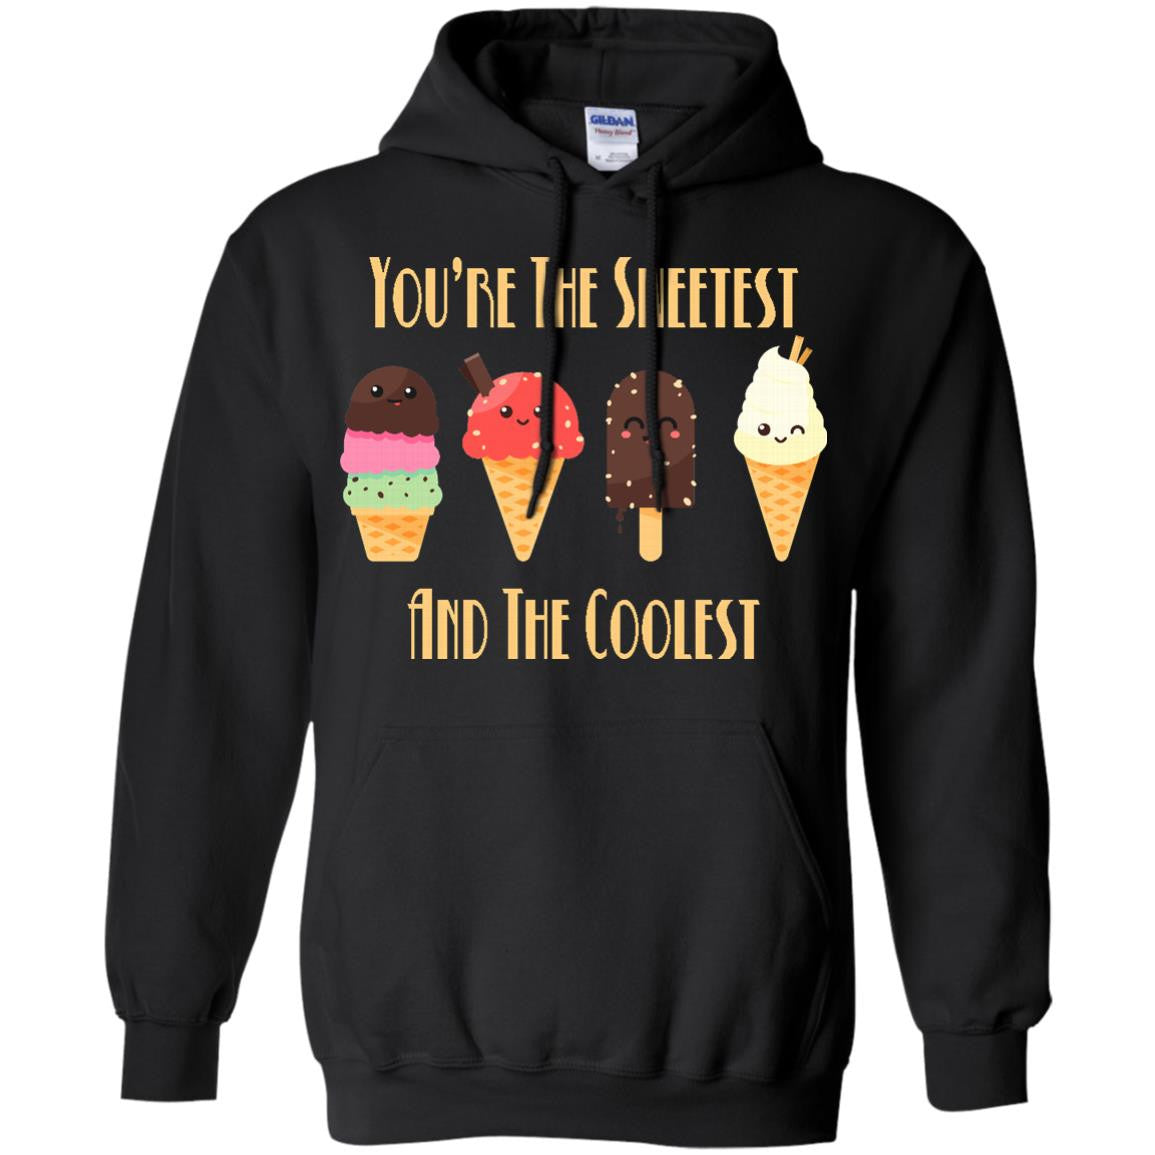 You're The Sweetest and the Coolest Hoodie